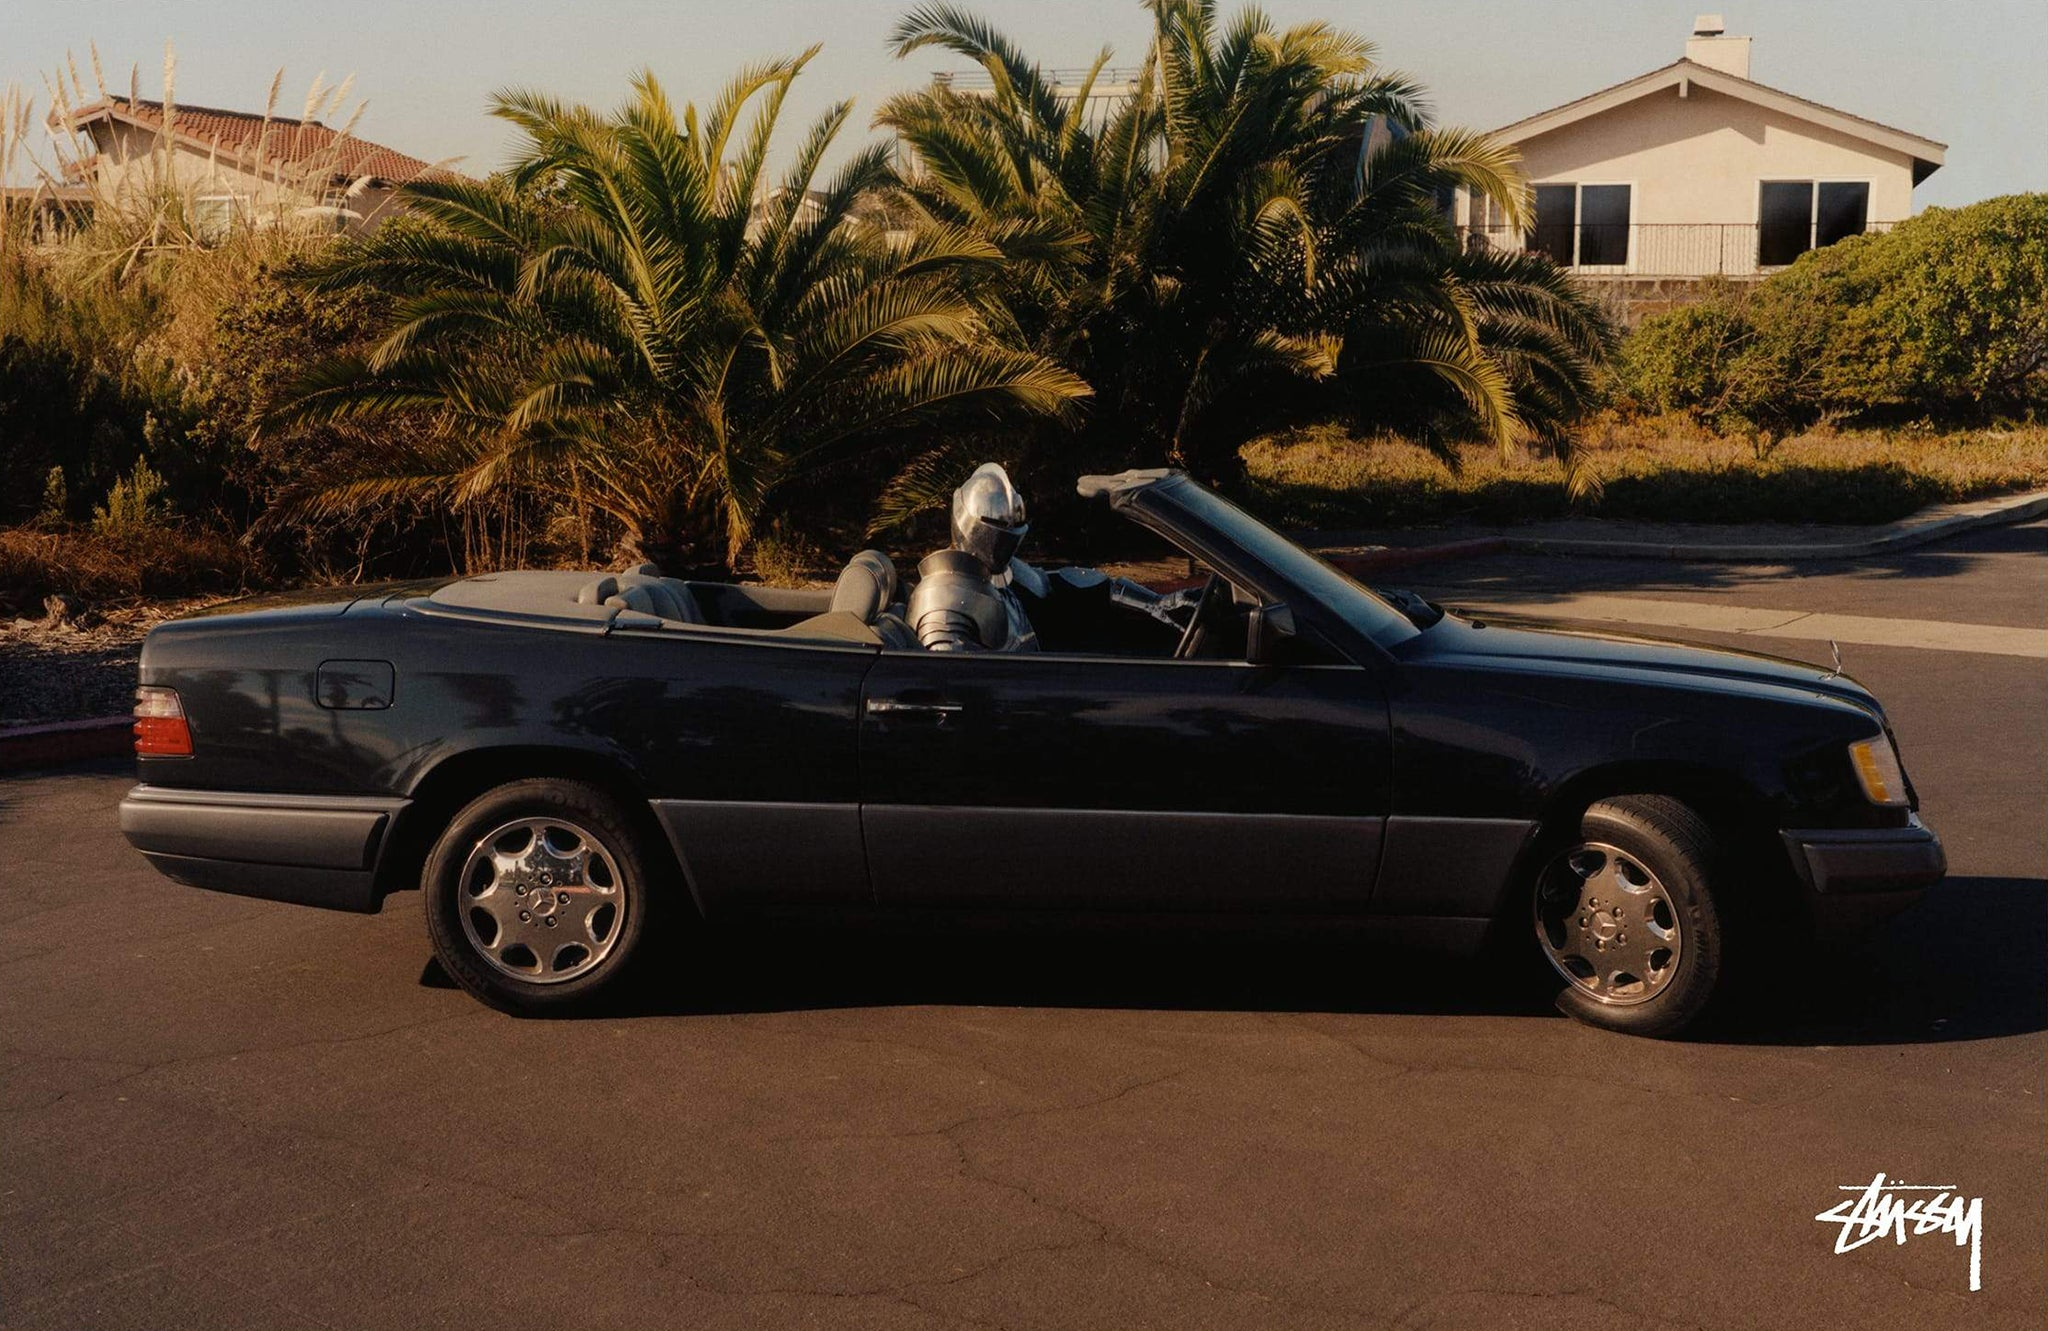 Person dressed in armor driving a black Mercedes SL parked in a cul-de-sac for Stussy photoshoot